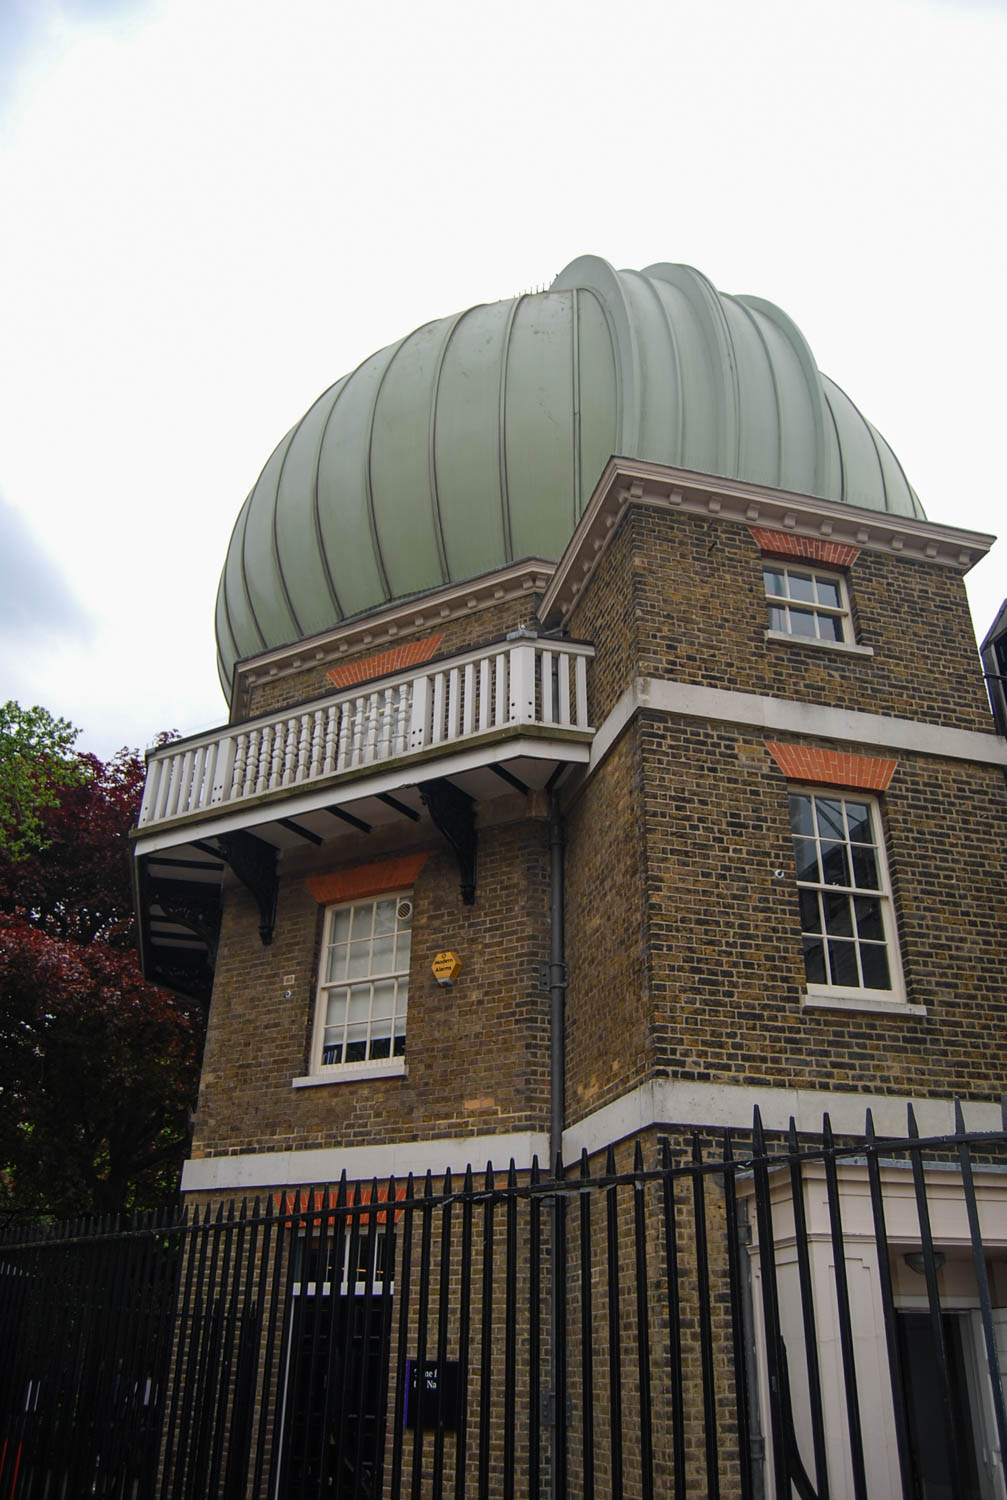 Greenwich, Royal Observatory